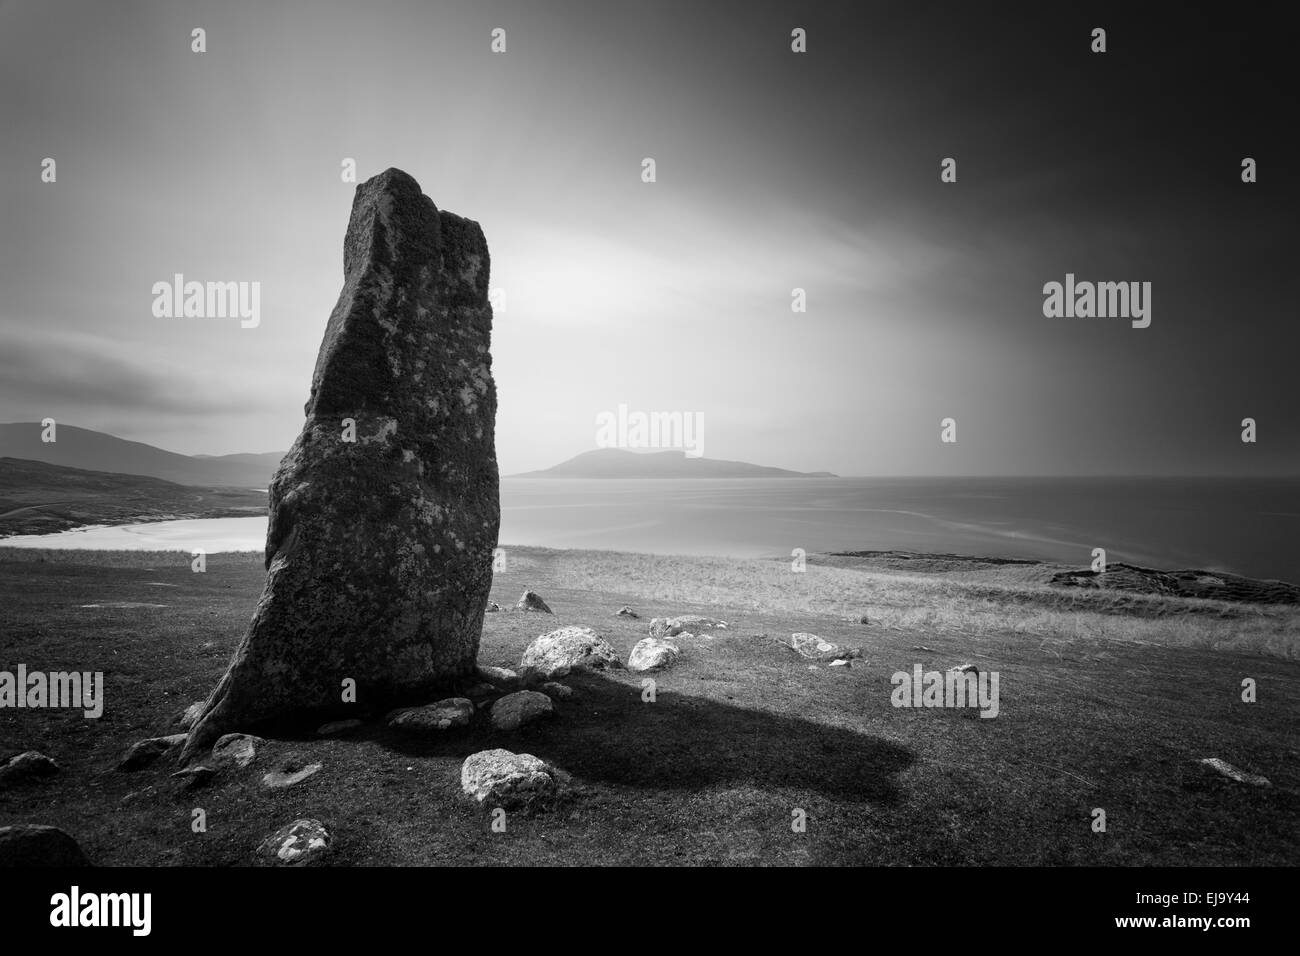 Macleod's stone, a prehistoric standing stone on the Isle of Harris in the Outer Hebrides. - Stock Image